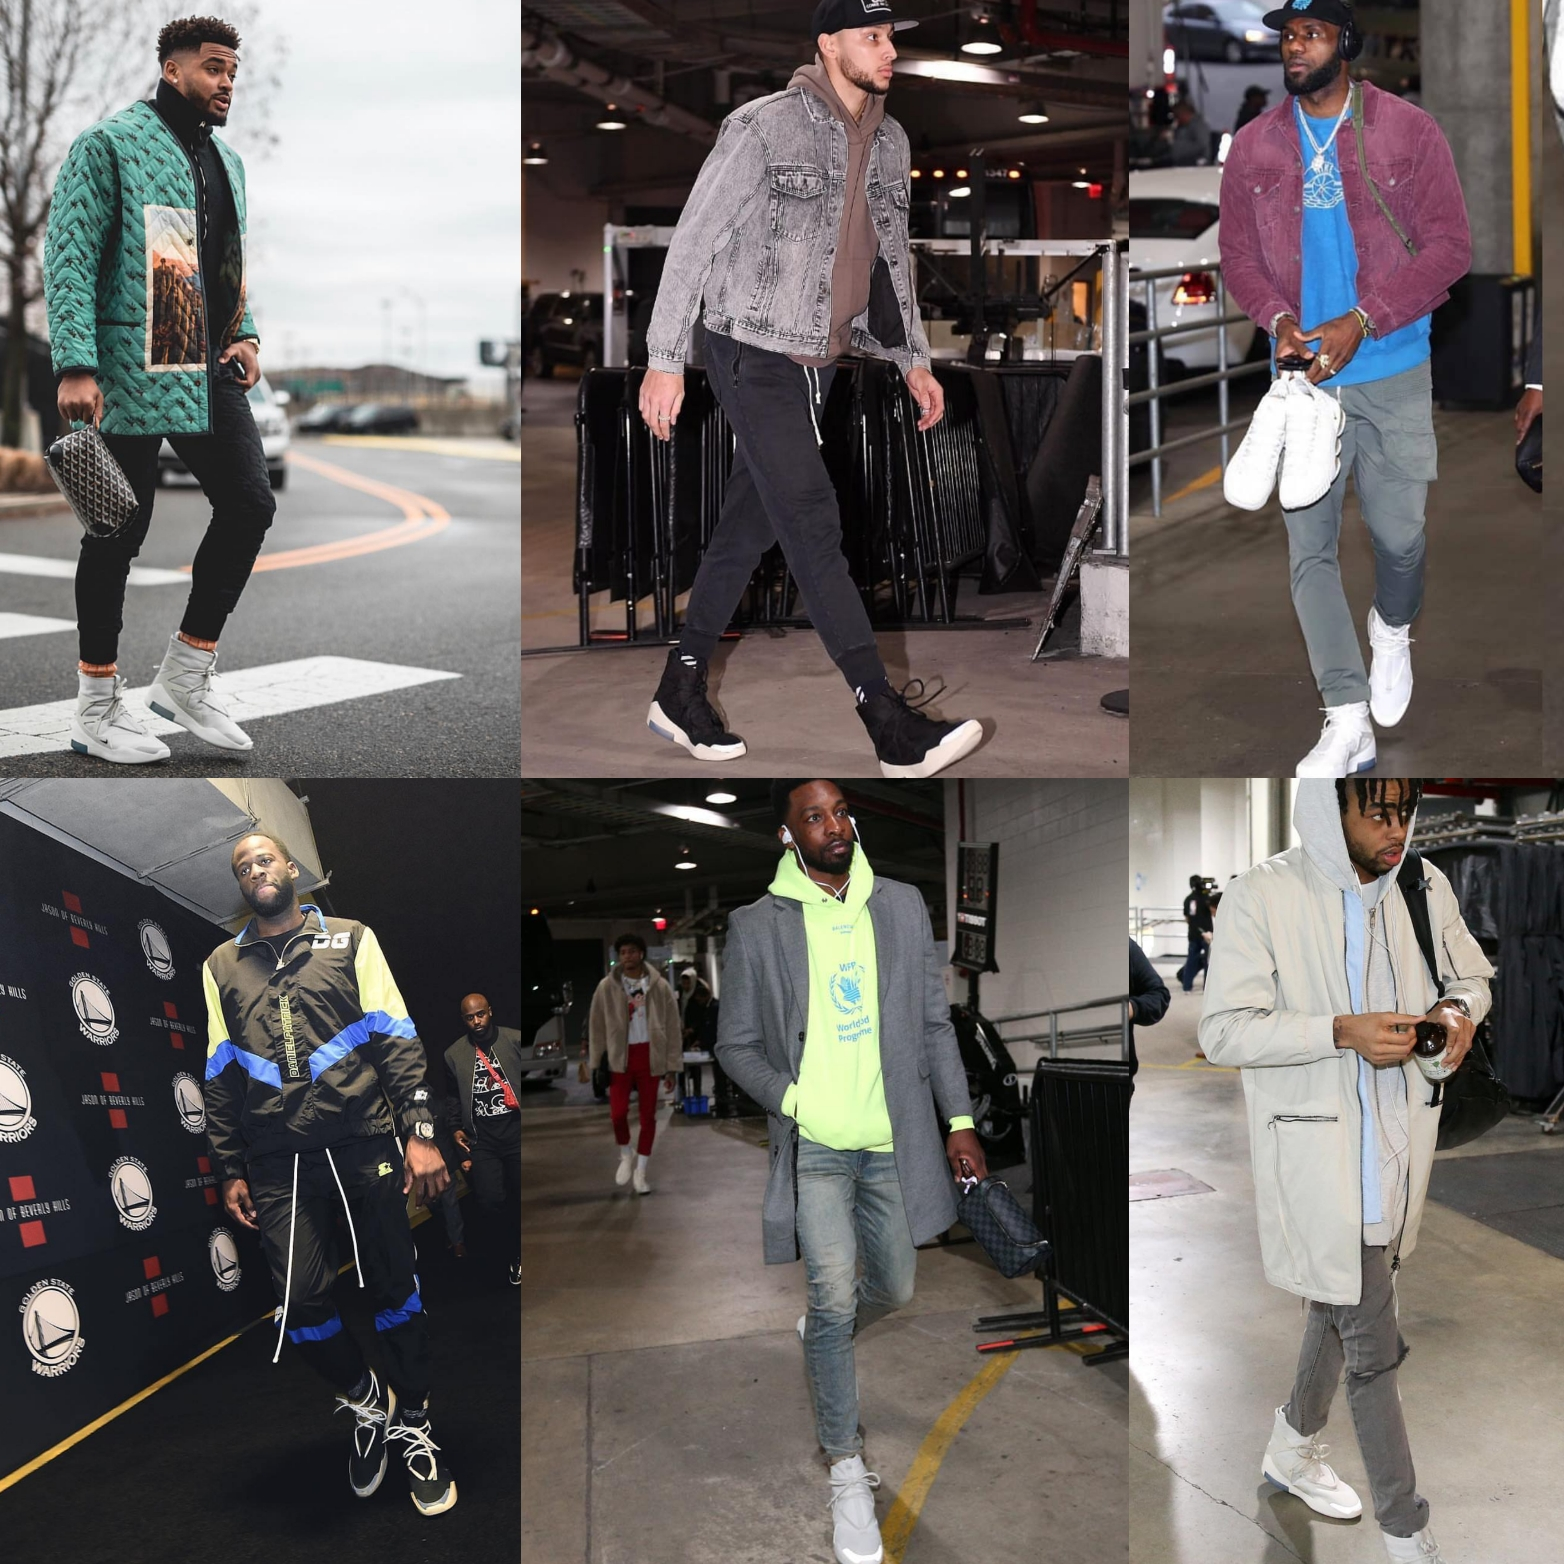 Nike Air Fear Of God 1: Lebron James, Ben Simmons, Draymond Green, Jamal Adams OR Jeff Green..Who Wore it best?